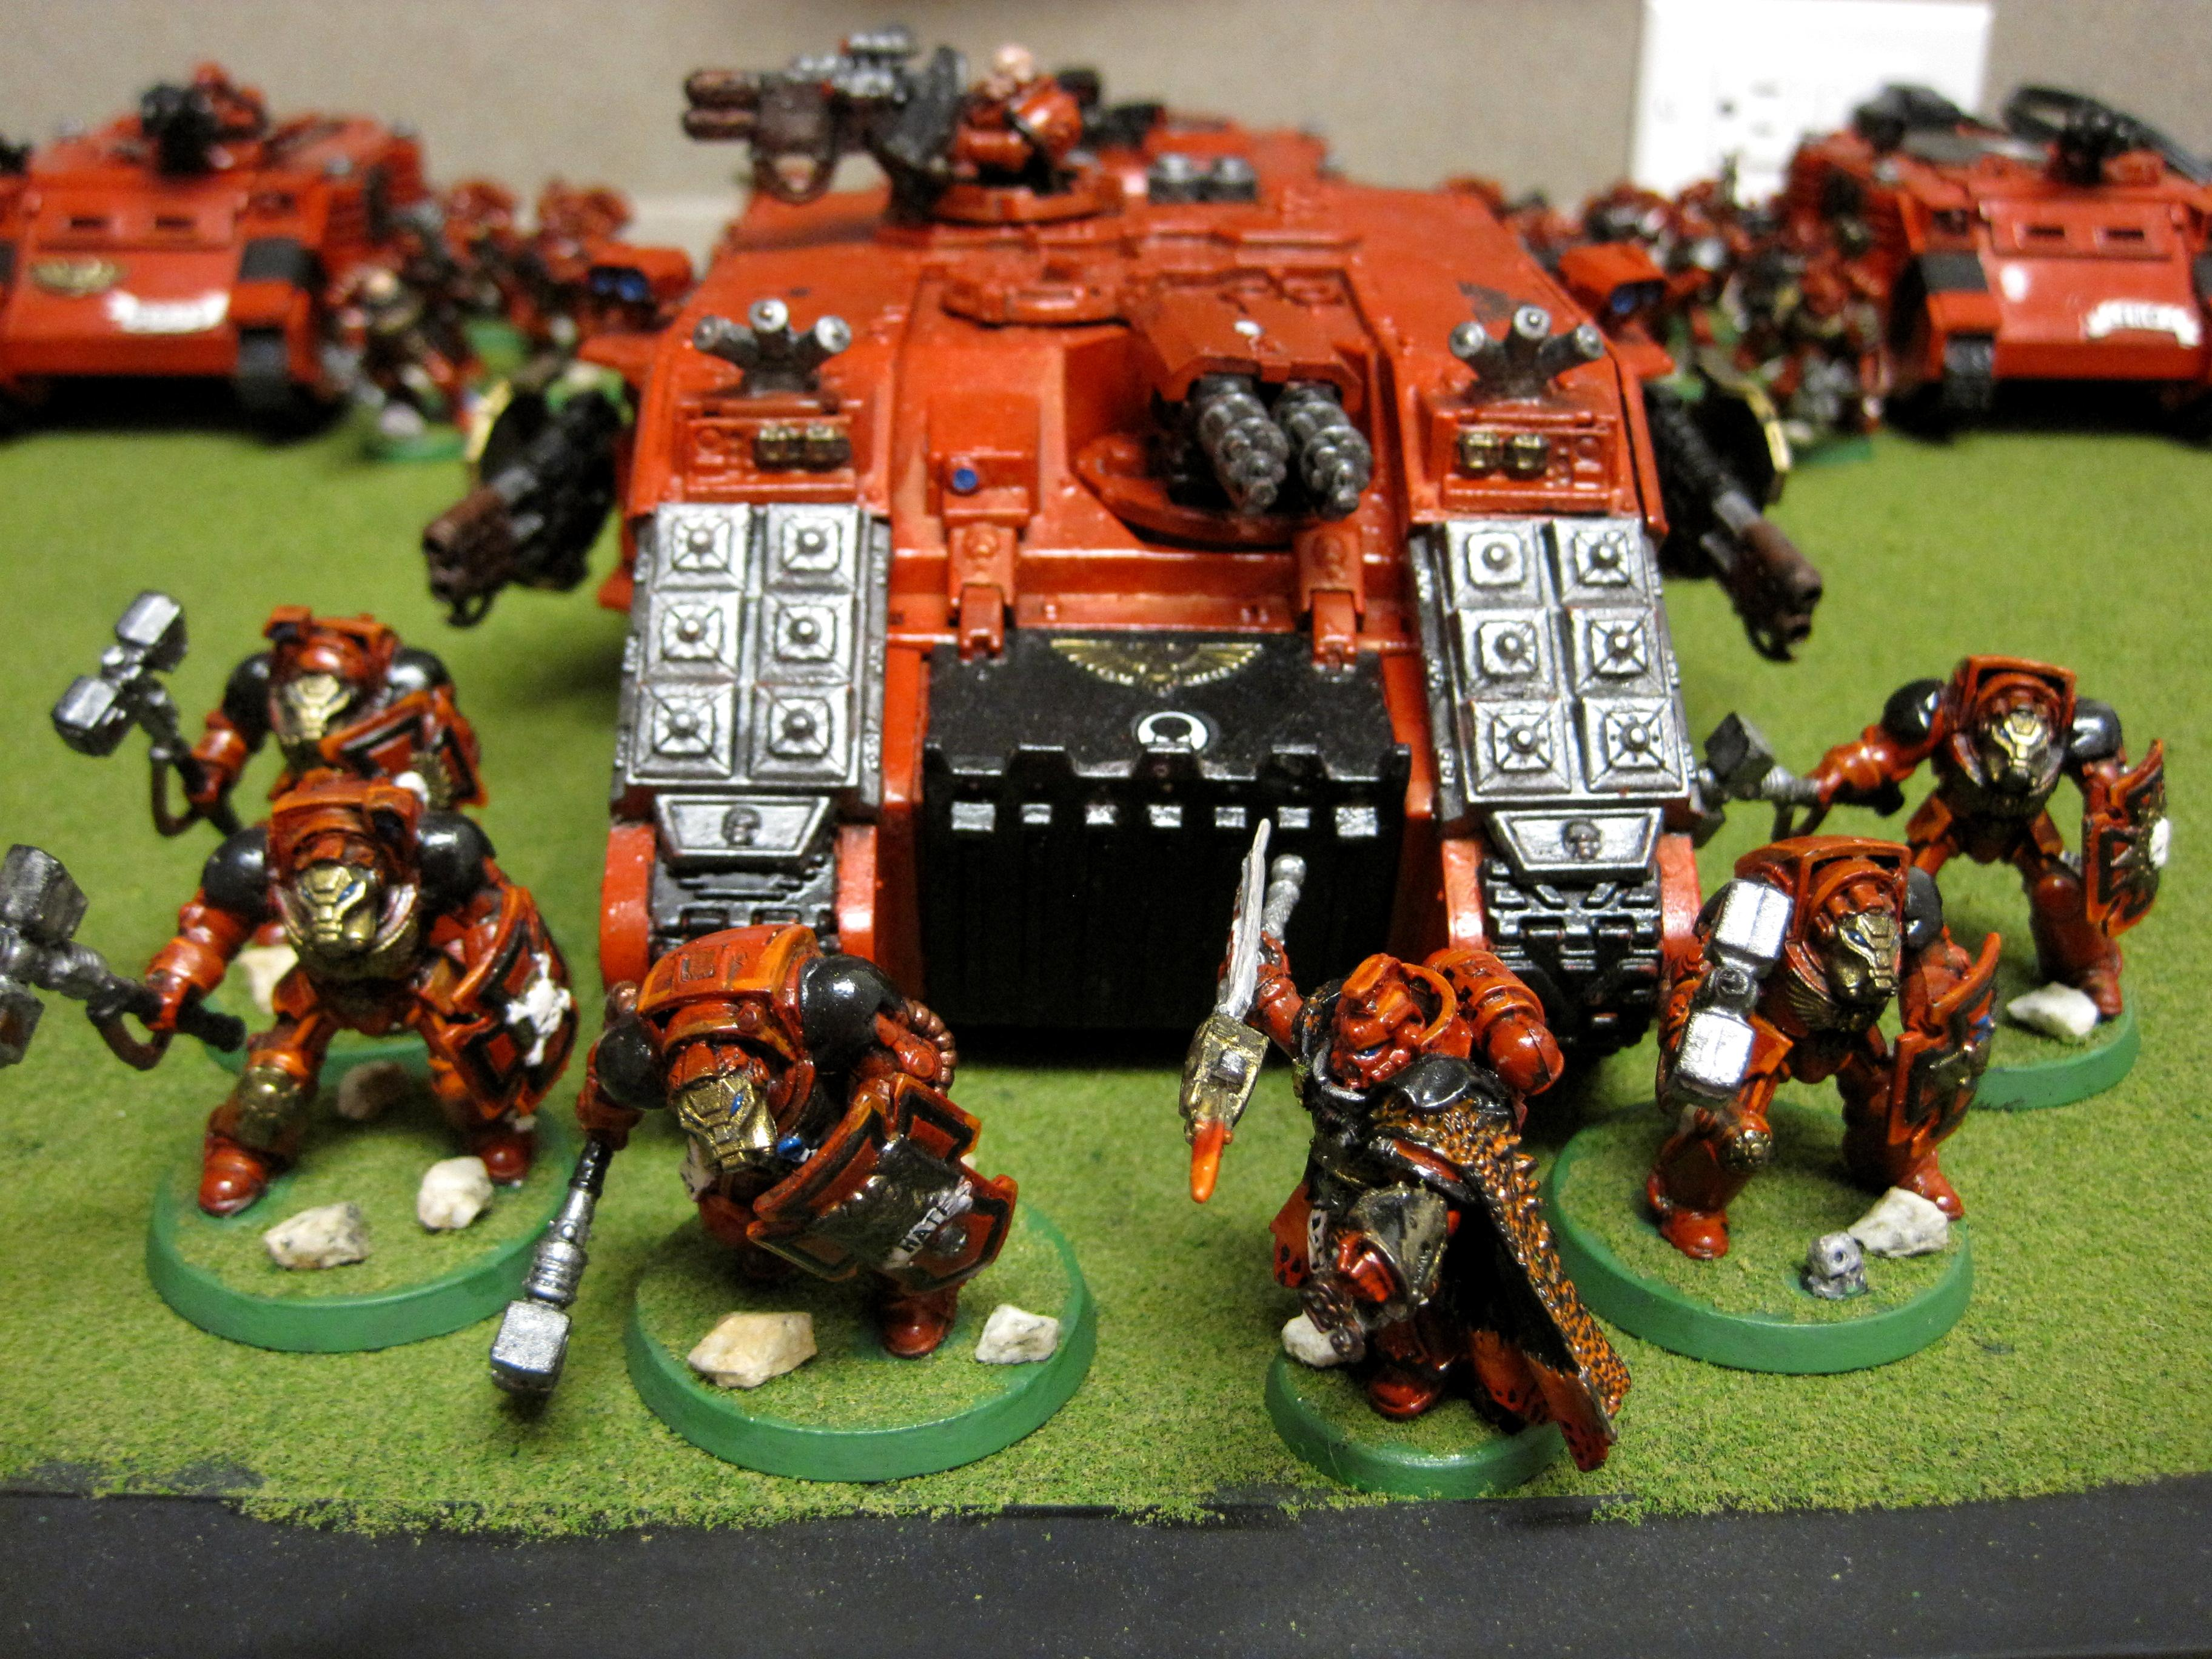 Home Brew, Land Raider, My Old Army, Self Made Chapter, Space Marines, Terminator Armor, Warhammer 40,000